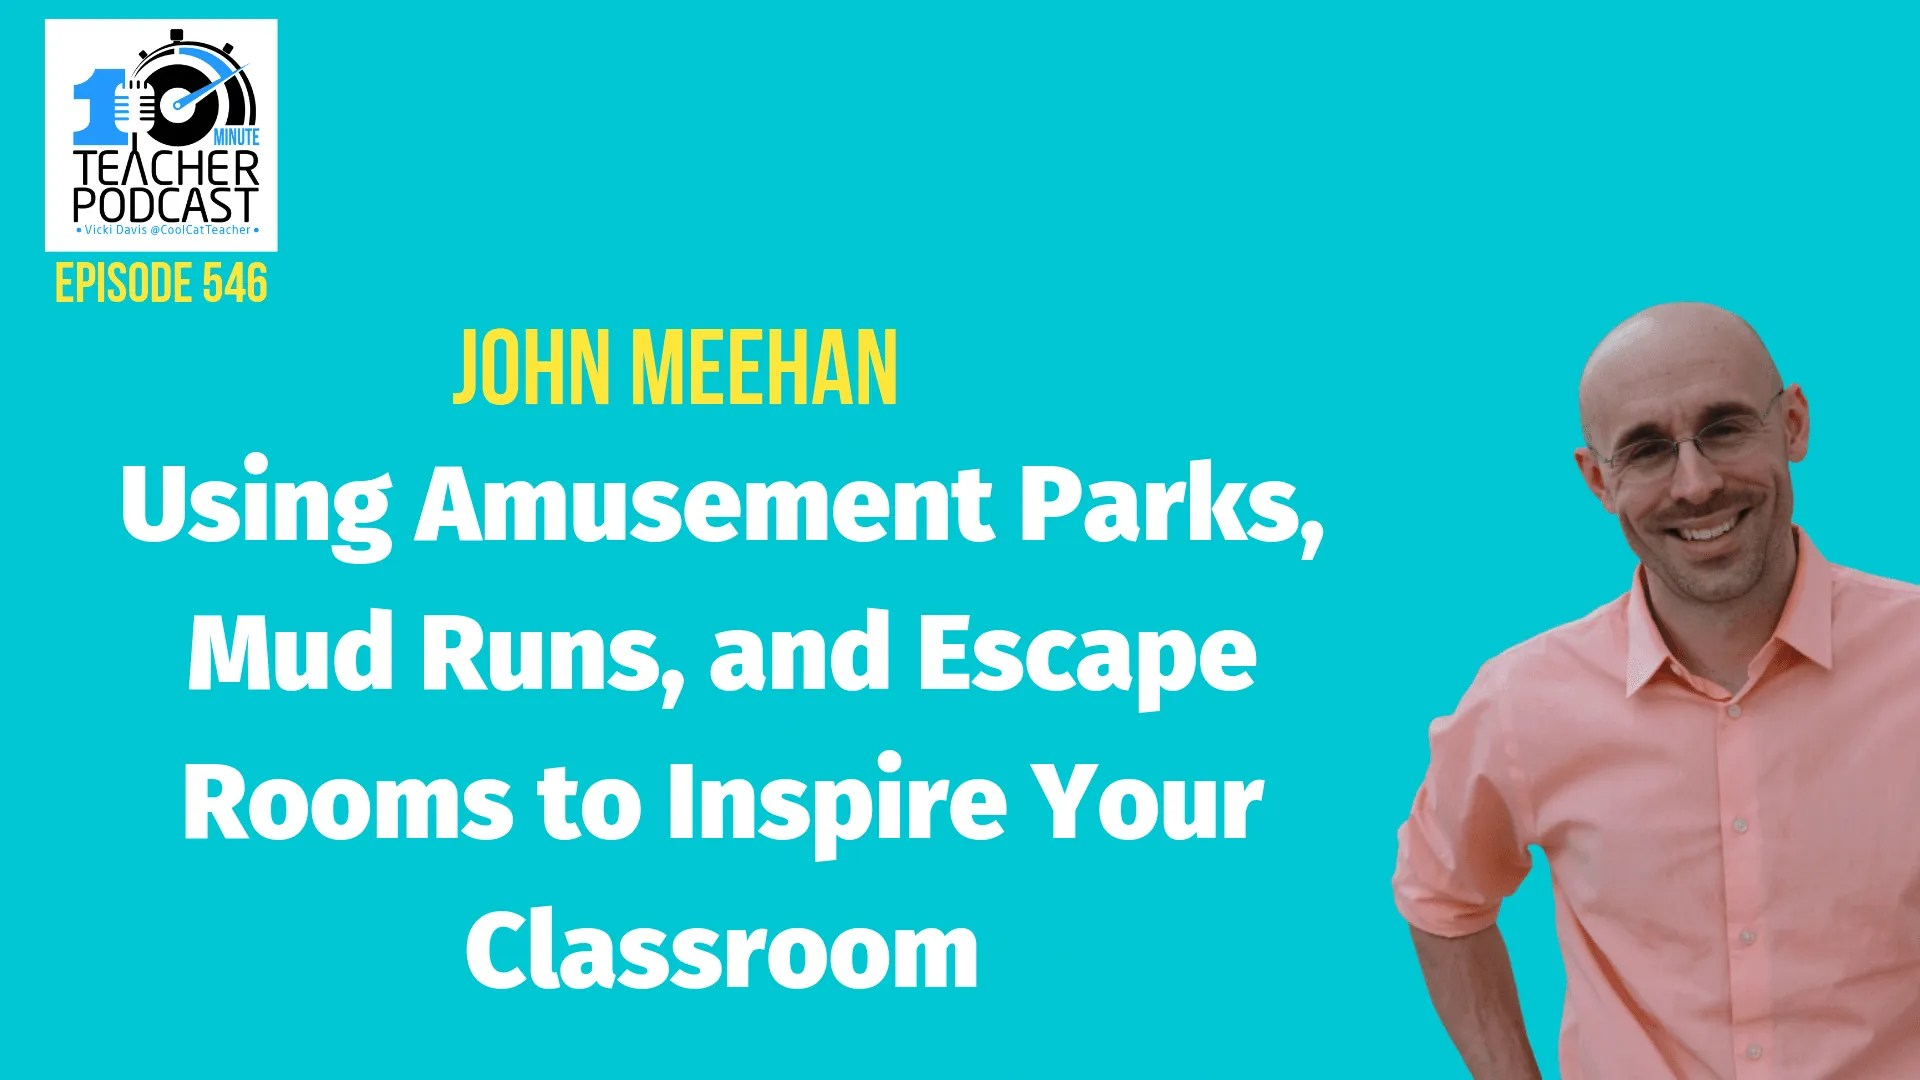 Using Amusement Parks, Mud Runs, and Escape Rooms to Inspire Your Classroom @coolcatteacher